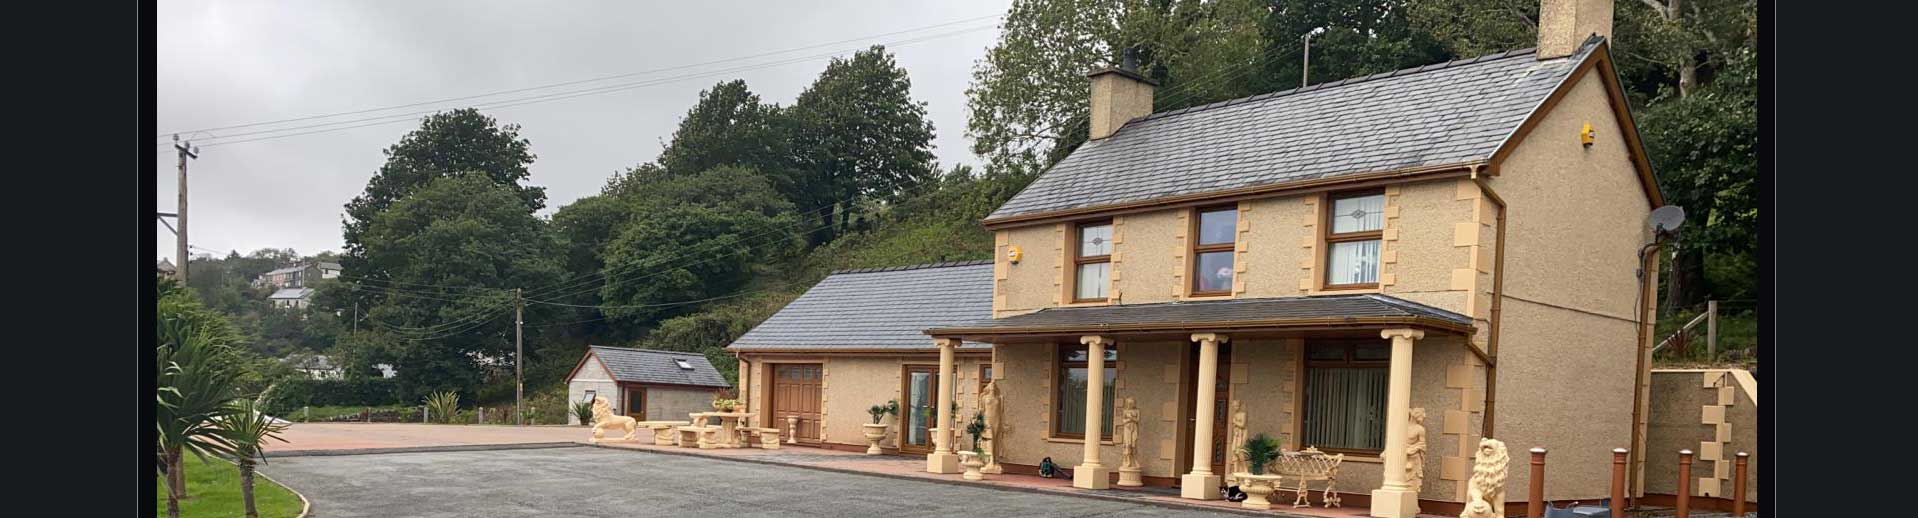 Luxury Holiday Home Let in North Wales